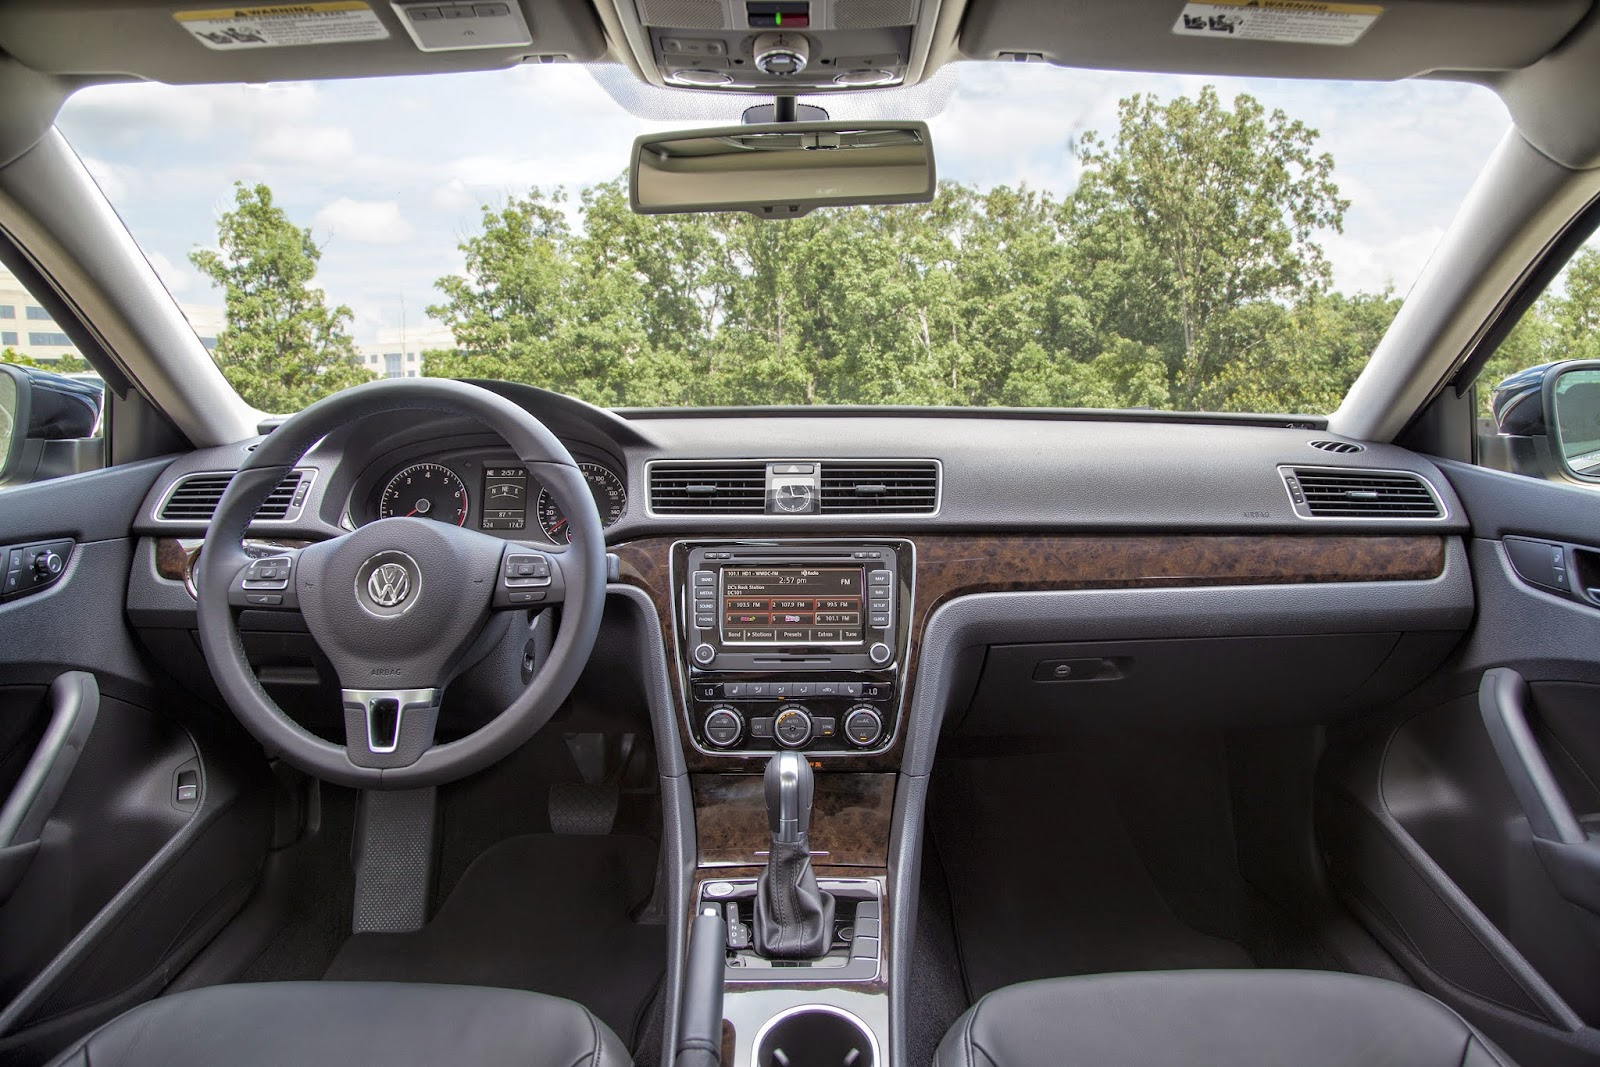 Interior view of 2014 Volkswagen Passat